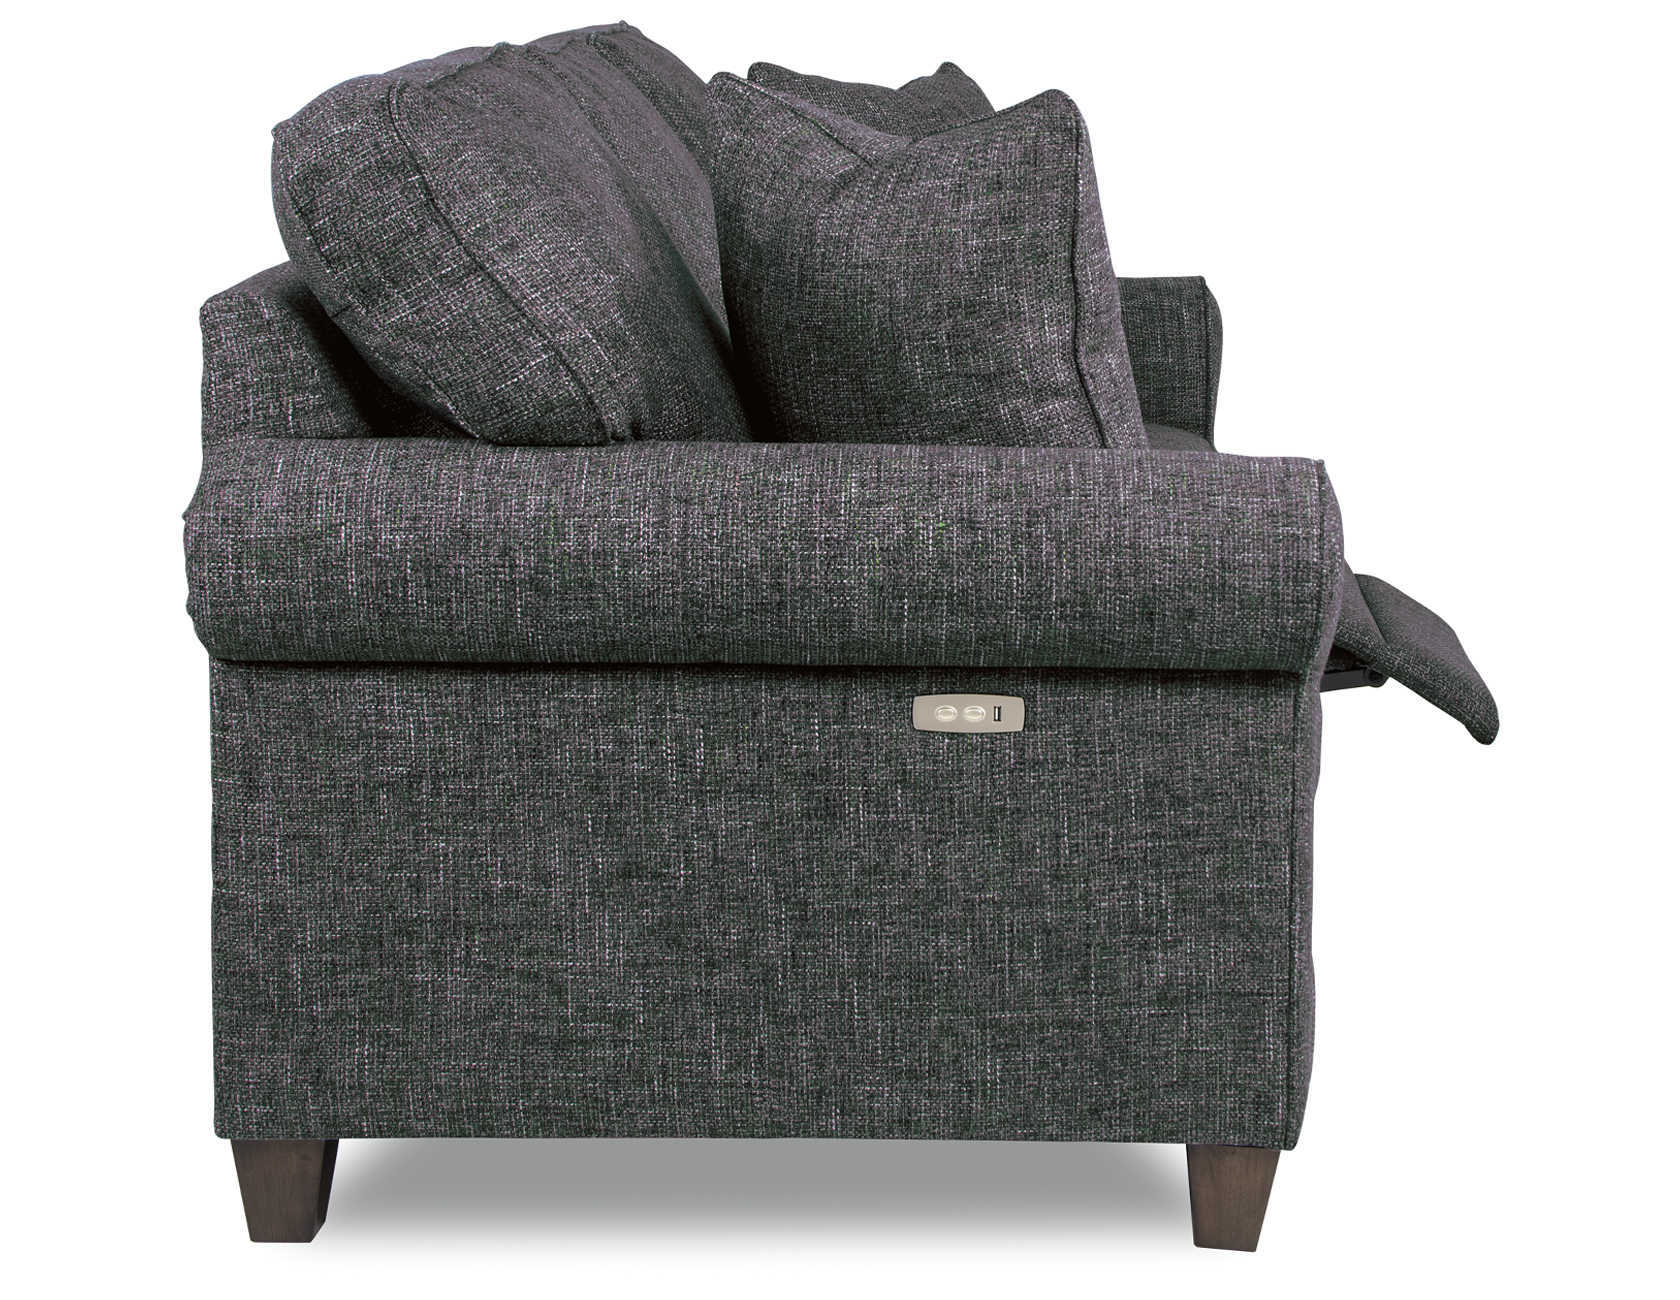 Luke Duo Reclining 2 Seat Sofa Side View